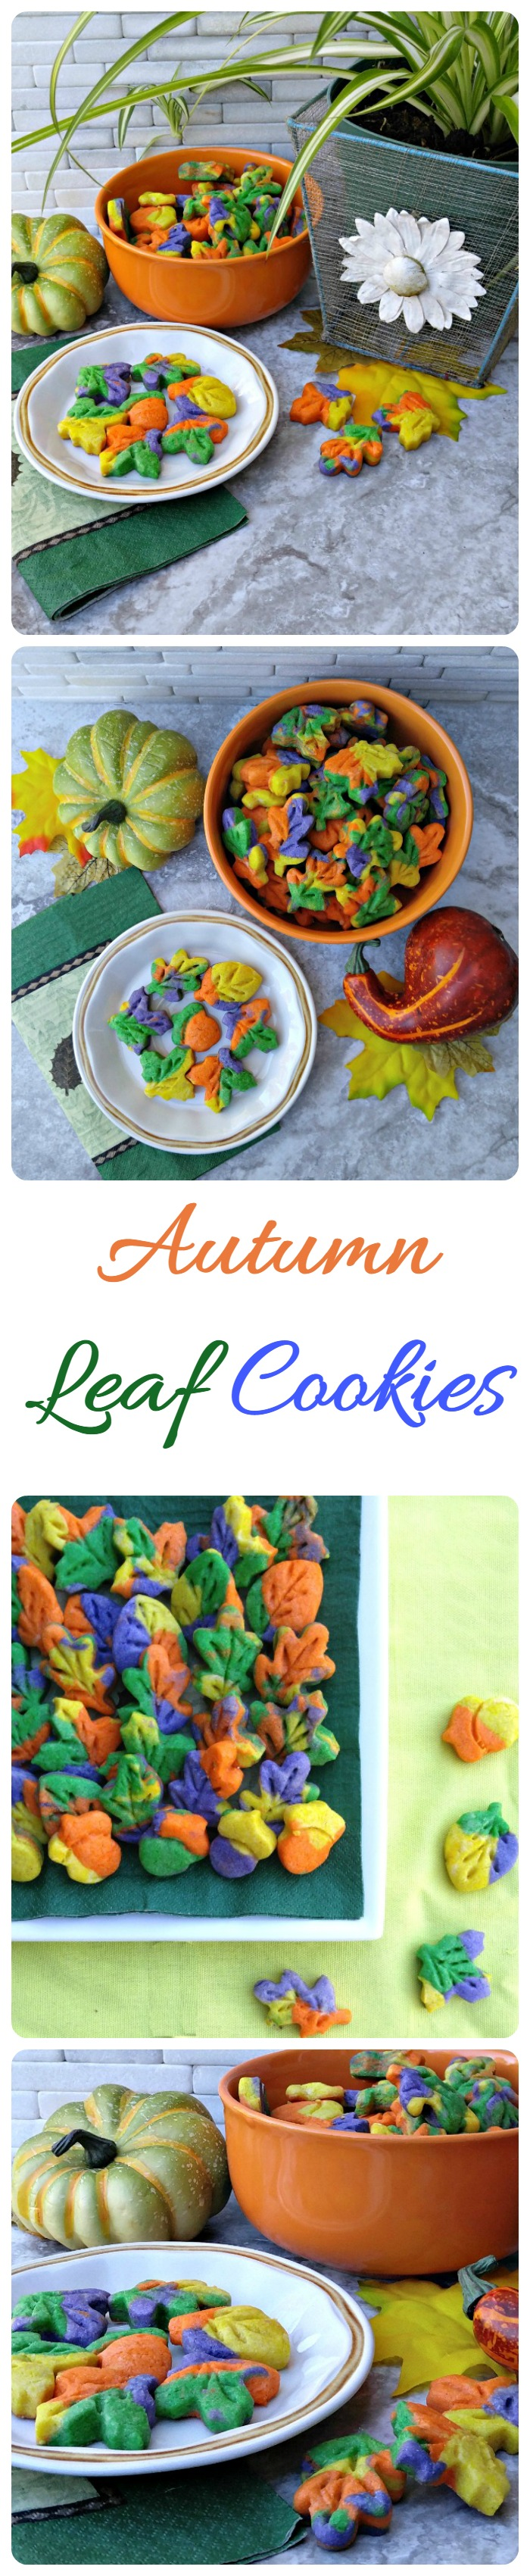 These Thanksgiving autumn leaf cookies will bring in the color of fall to your holiday table. They are easy to make and your holiday guests will love them!